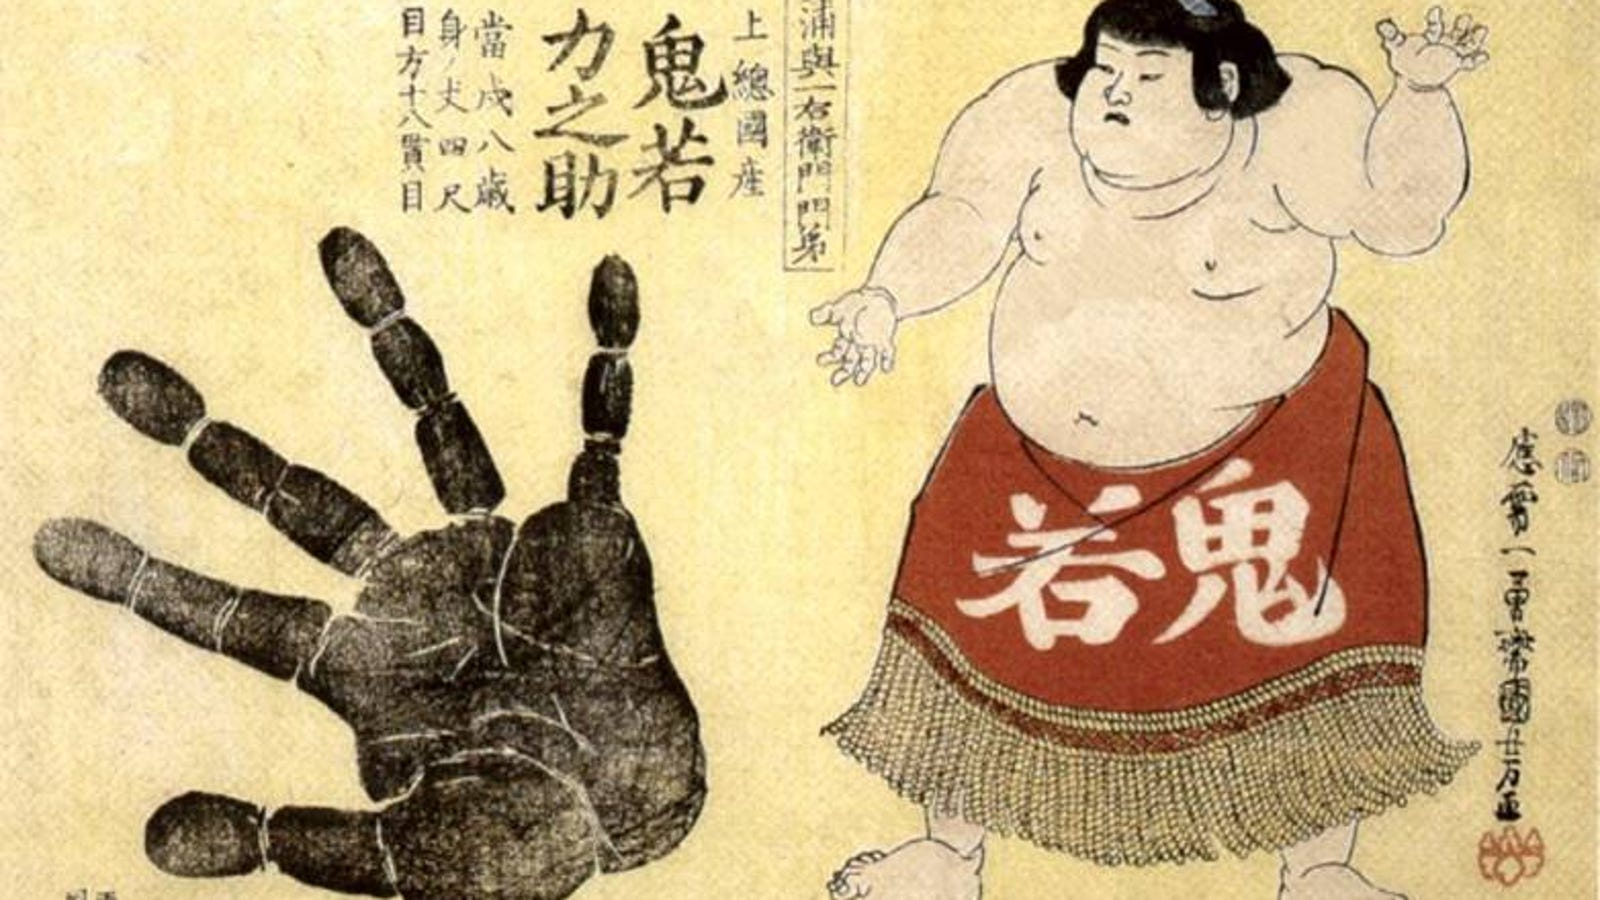 Digit ratio: low 2D:4D finger length ratios are more successful in Sumo wrestling.